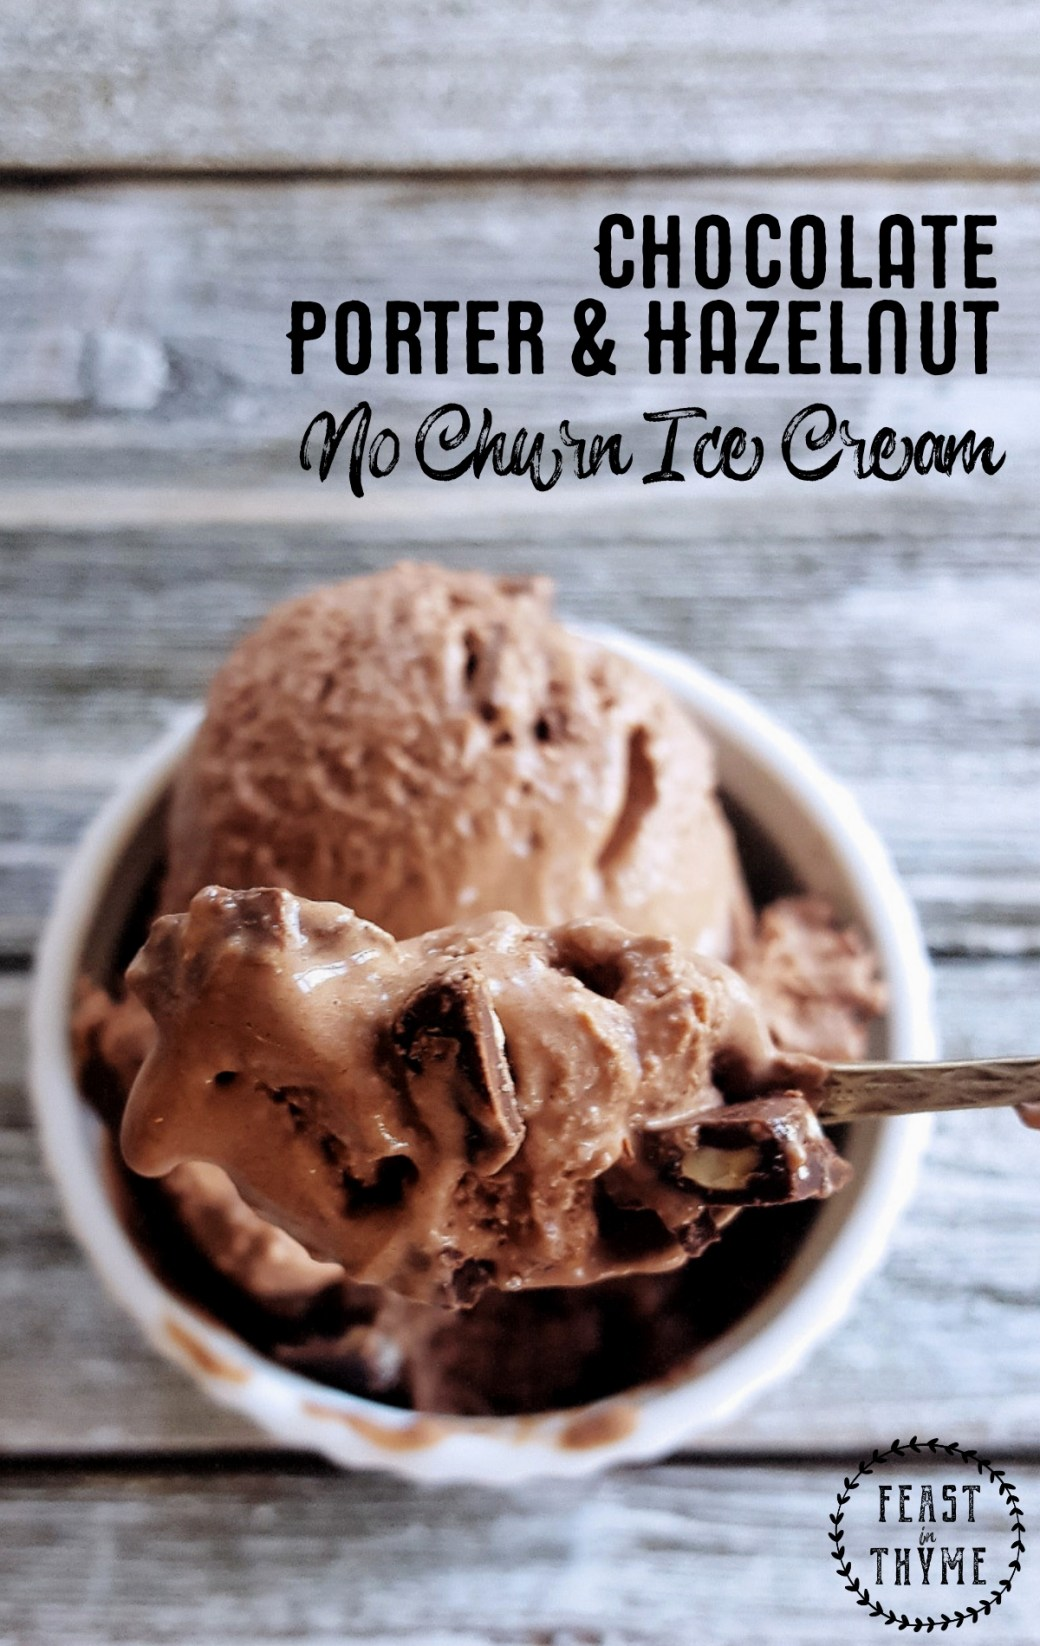 I scream, you scream, we all scream for this rich & creamy Chocolate Porter & Hazelnut No Churn Ice Cream no matter the time of year. #icecream #chocolate #beer | FeastInThyme.com